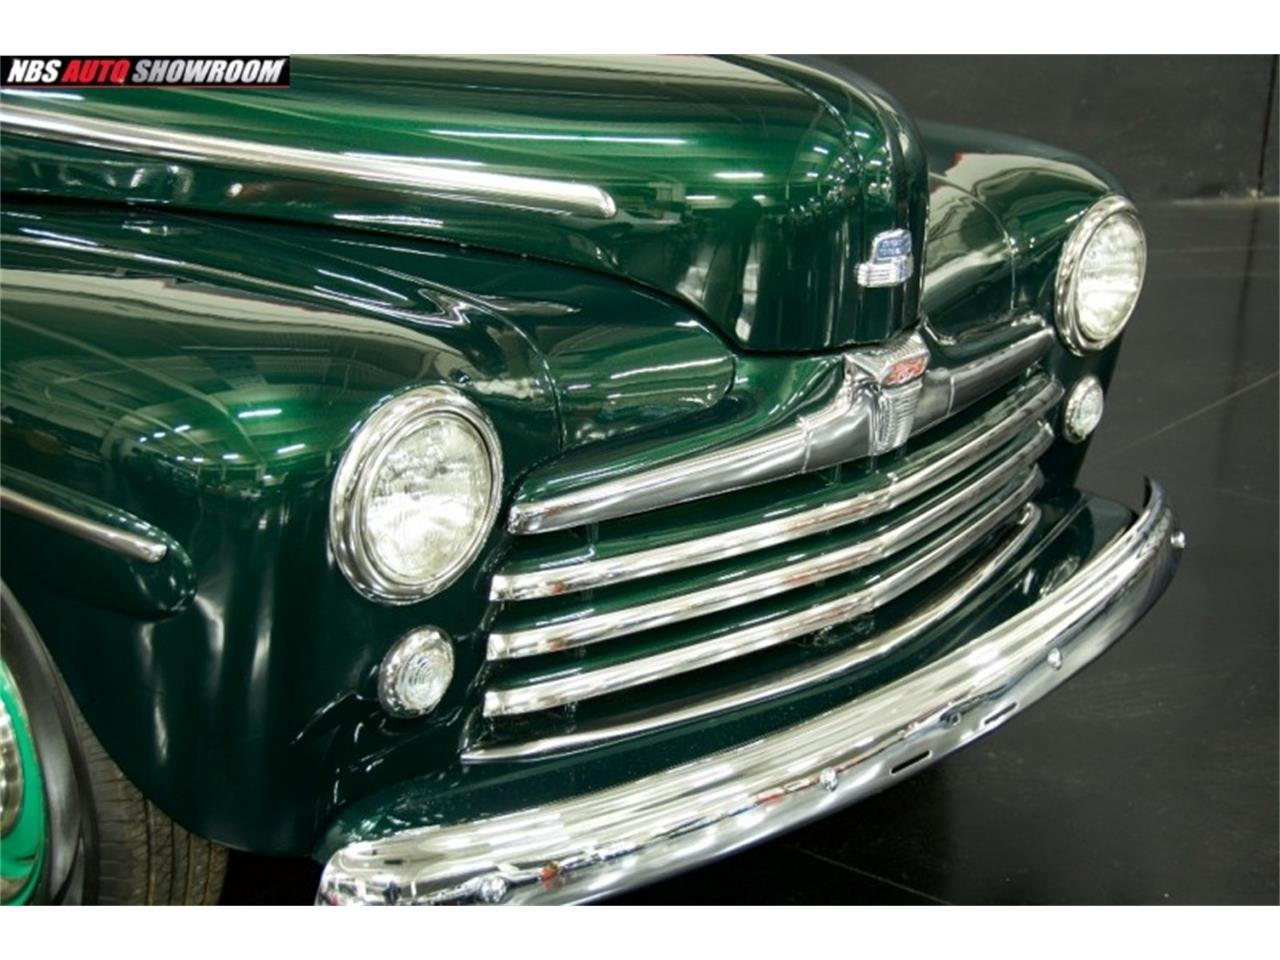 Large Picture of '47 Deluxe Offered by NBS Auto Showroom - PXT0